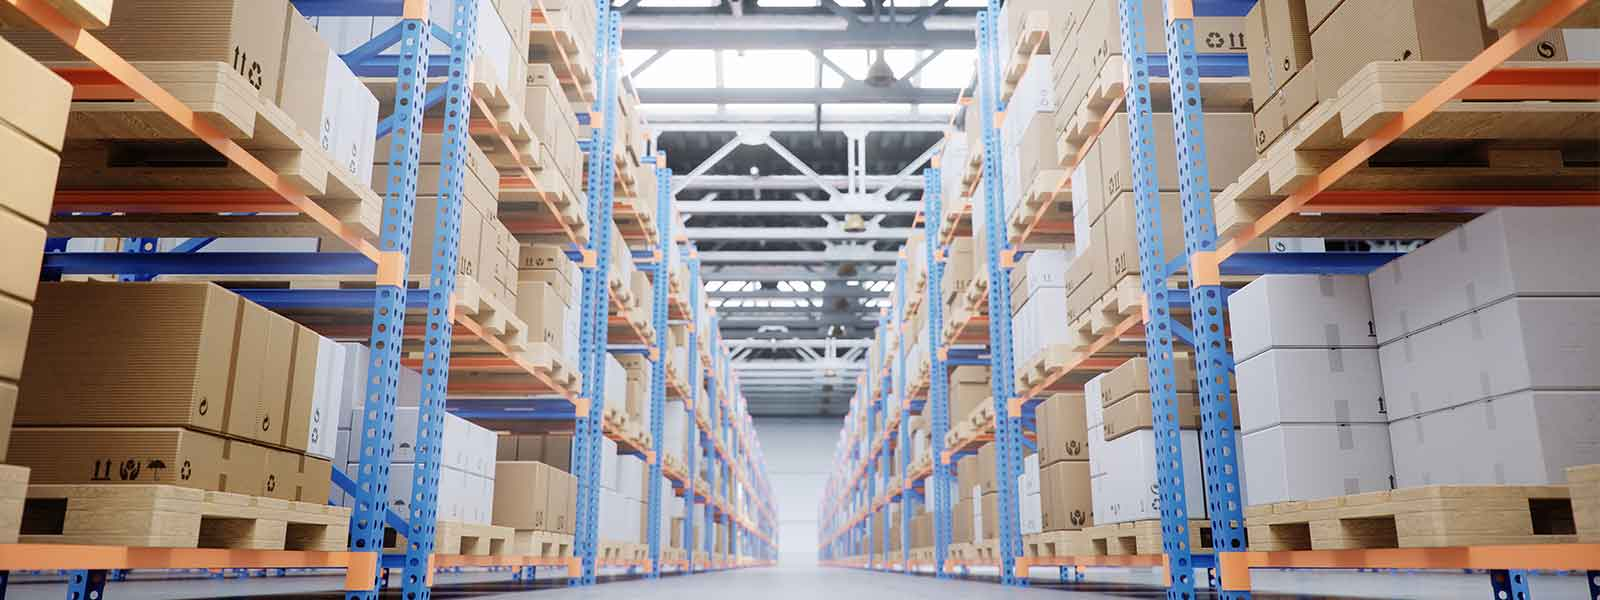 Logistics and warehousing in the Lekki Free Zone